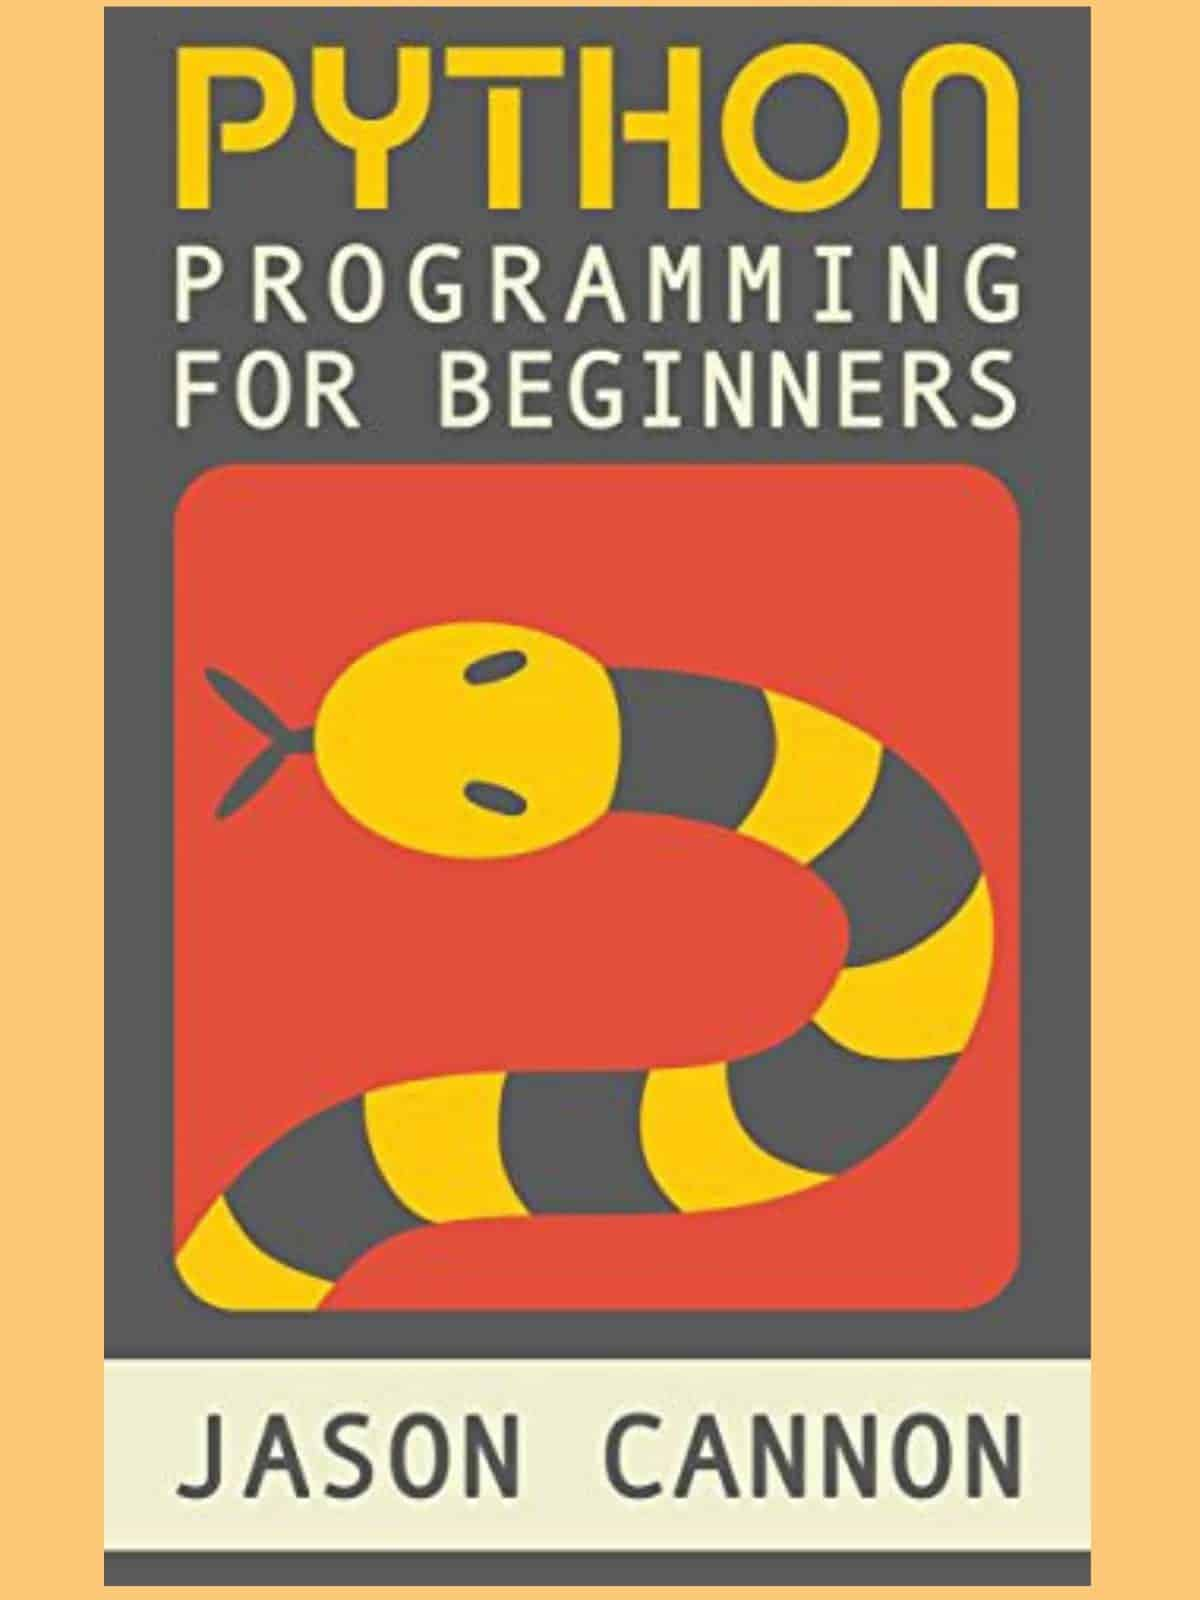 Python Programming For Beginners by Jason Cannon ($2.99) | Amazon's Best Selling Tech Kindle eBooks